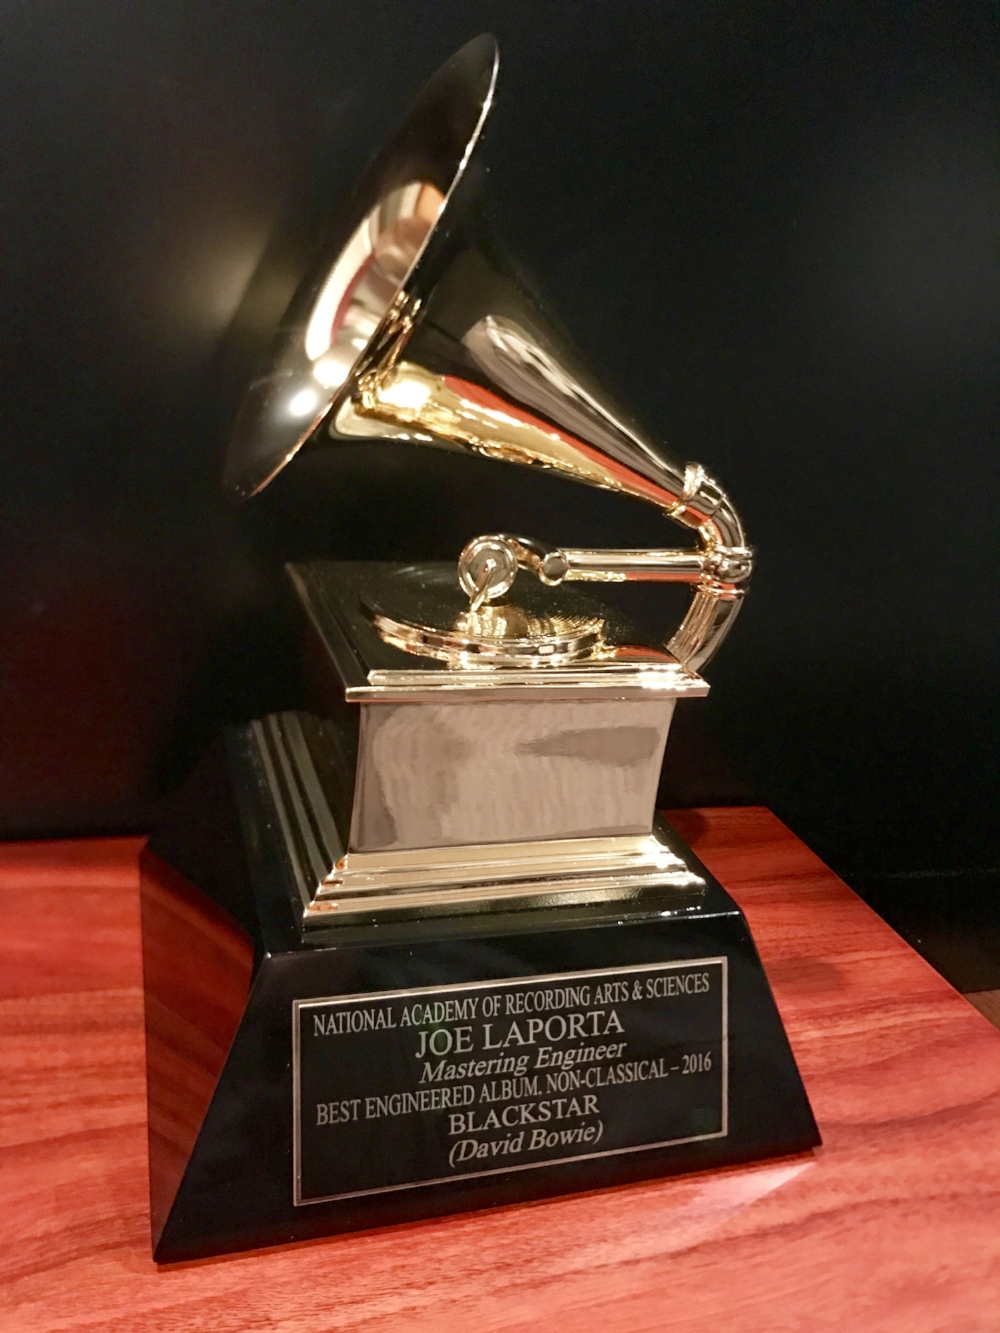 Bowie was awarded a posthumous Grammy for the album Blackstar & the album won several technical awards, as well.